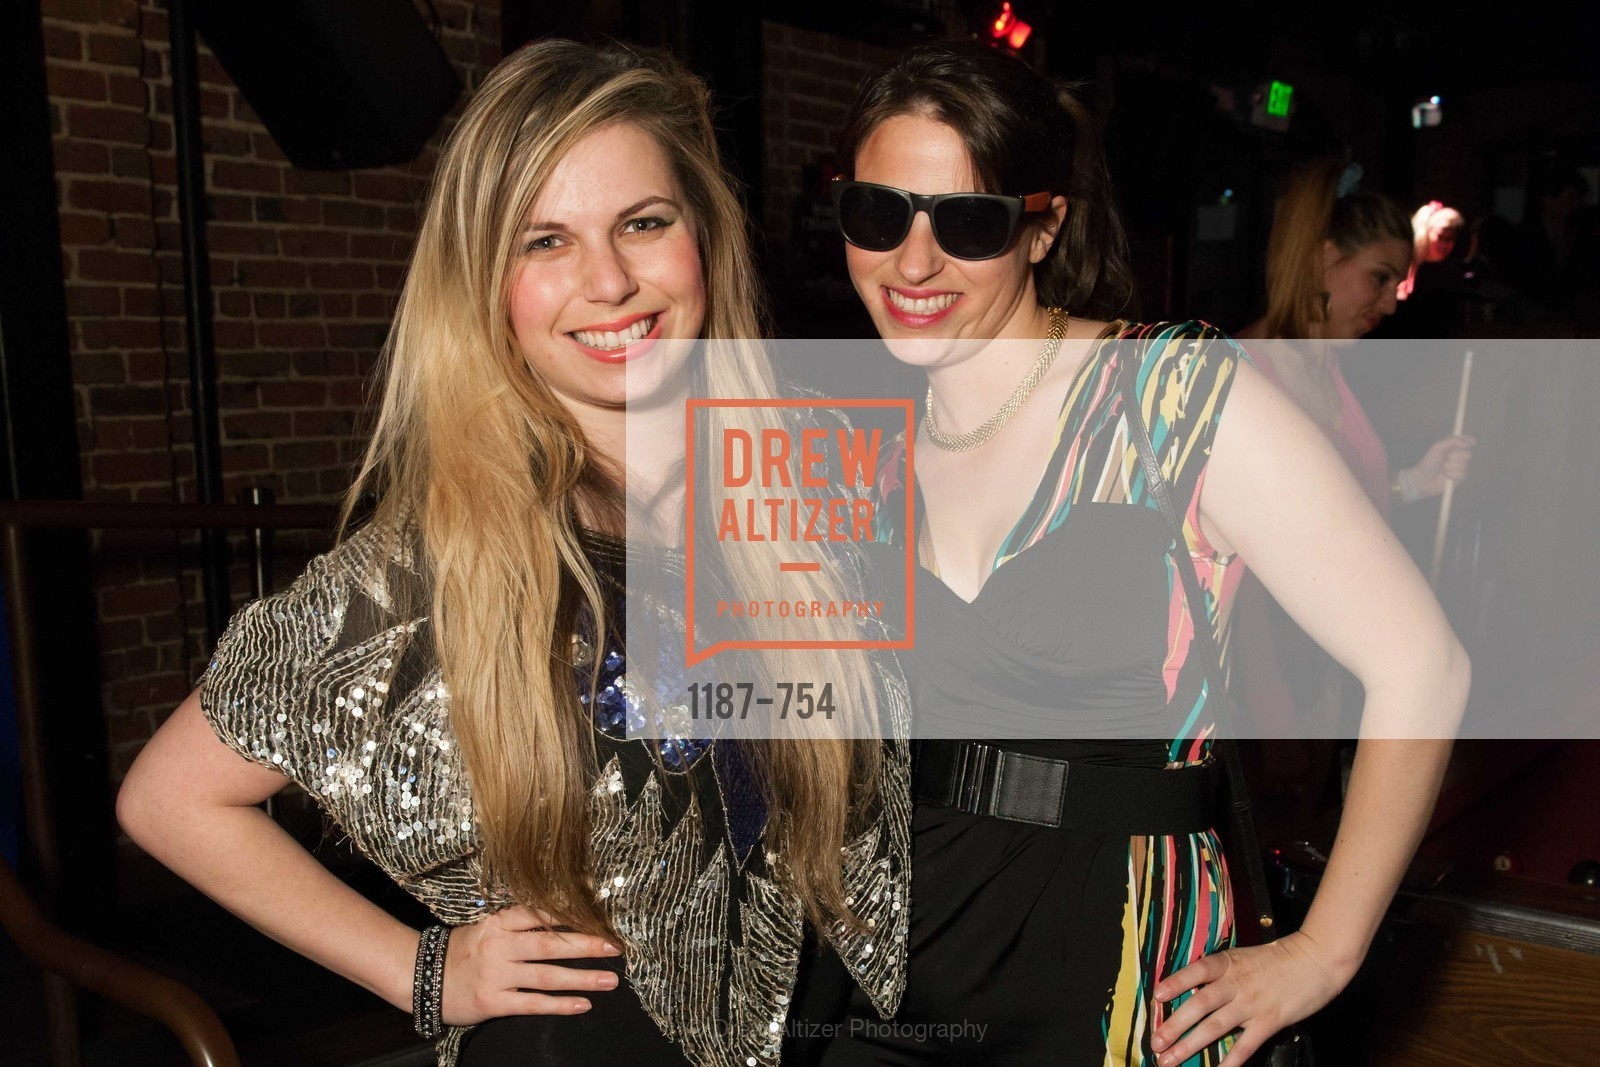 Camille Schmidt, Bailey Douglass, SPINSTERS OF SAN FRANCISCO Party Like It's 1985 Charity Party, US, May 29th, 2015,Drew Altizer, Drew Altizer Photography, full-service agency, private events, San Francisco photographer, photographer california